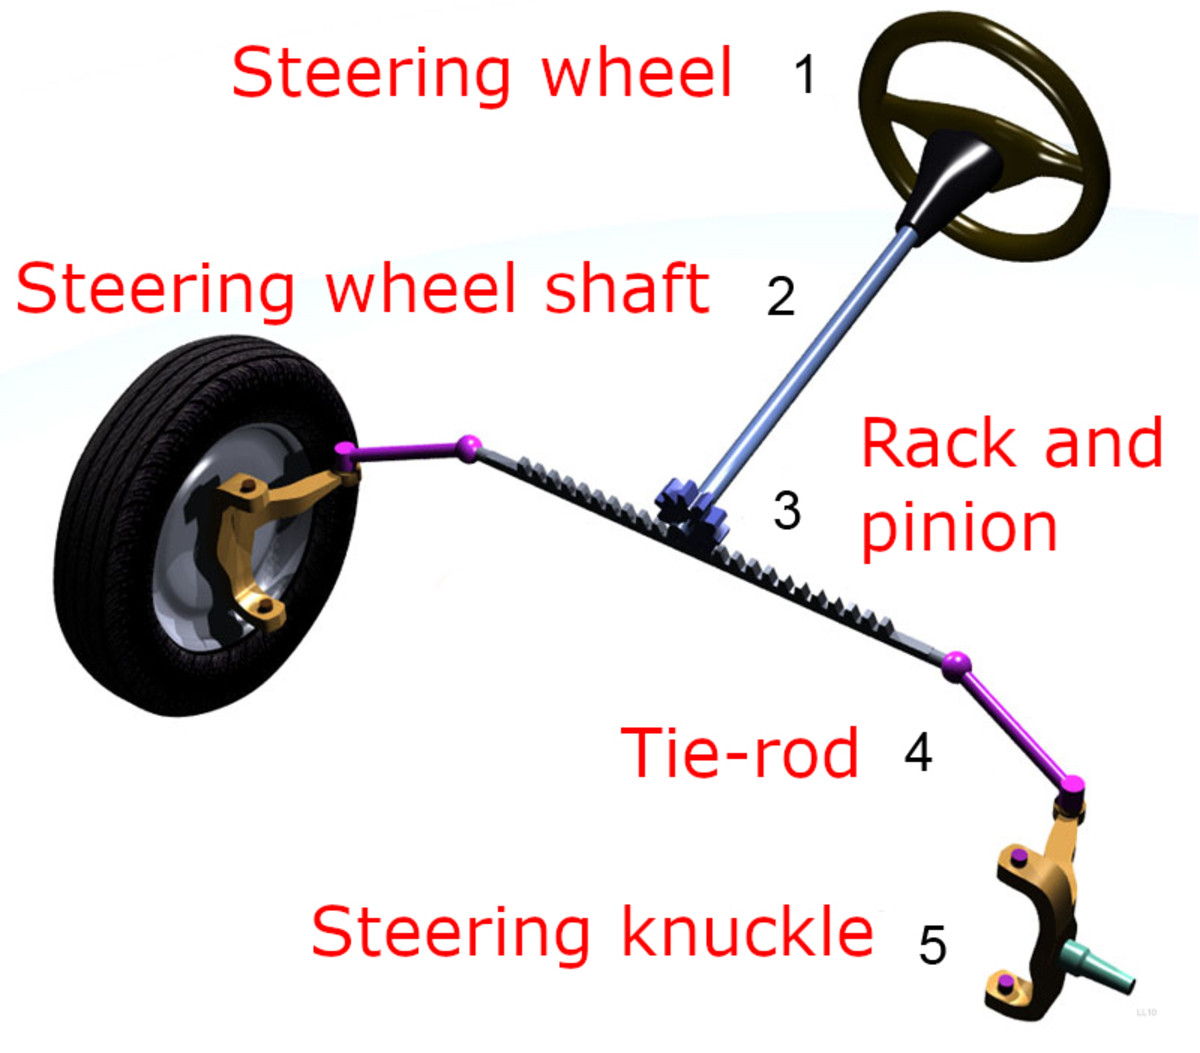 Steering system showing some basic mechanical components.